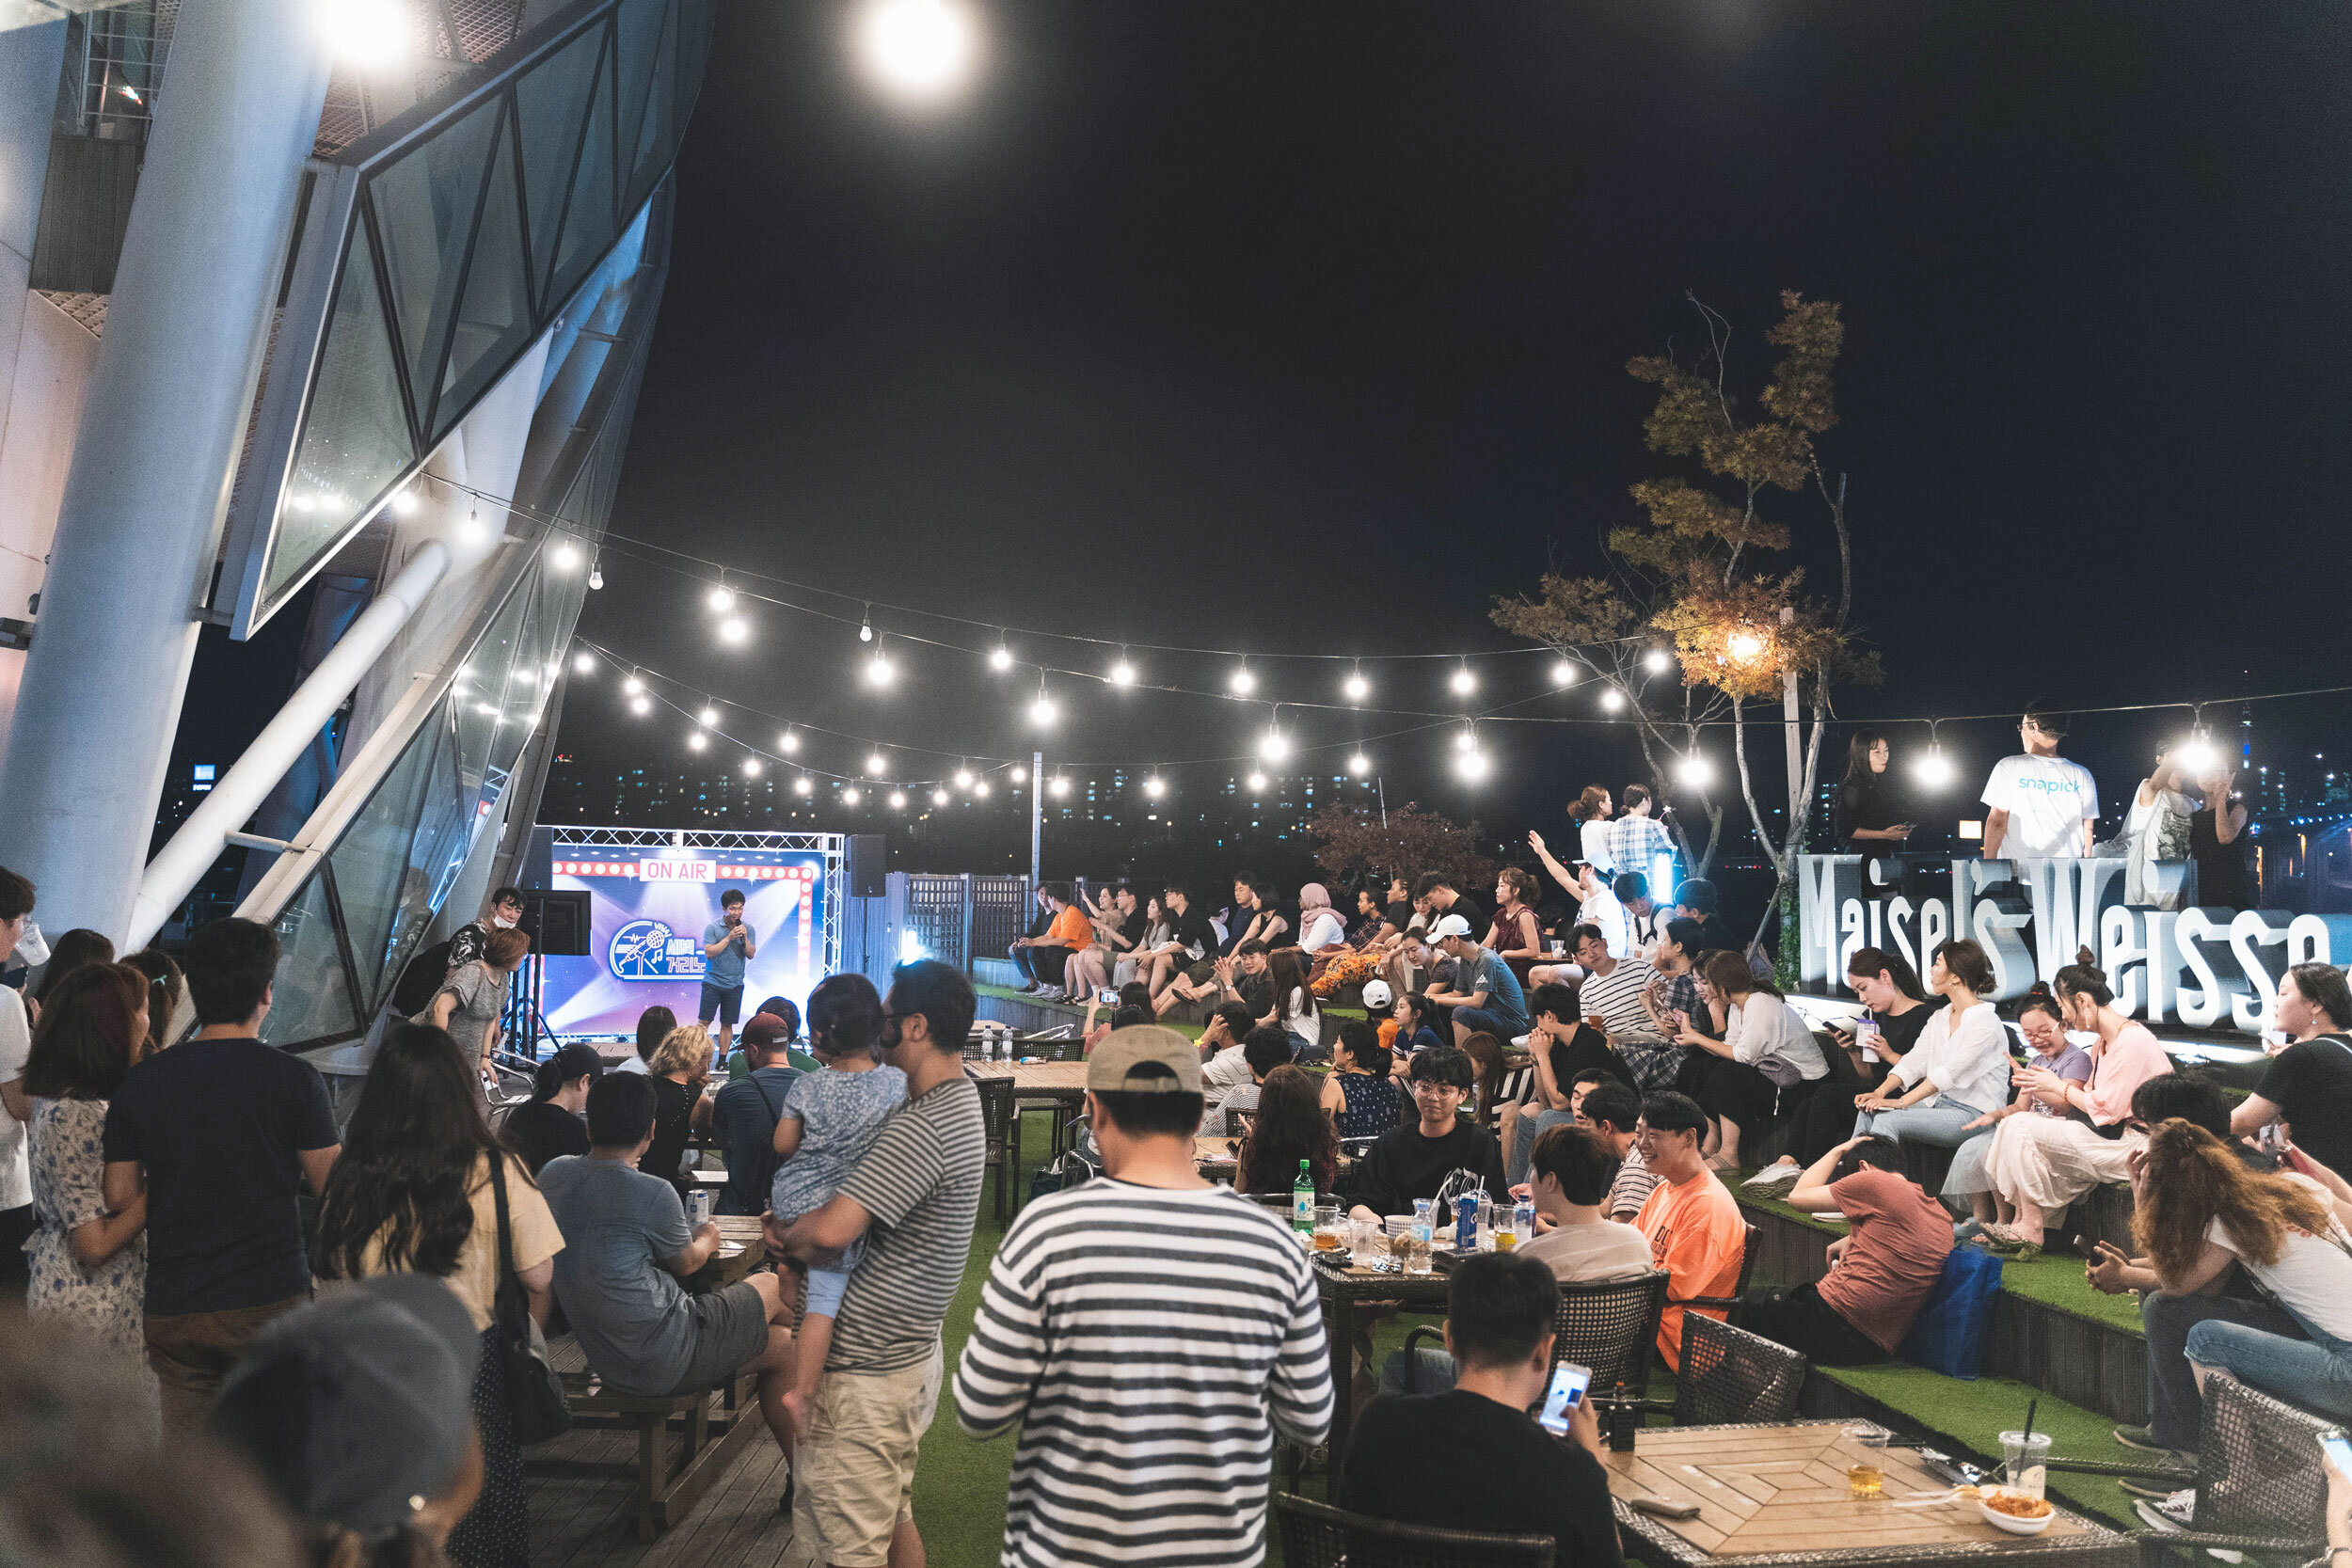 People eating and drinking, listening to opem mic karaoke at a Somesevit (Sebitseom) building